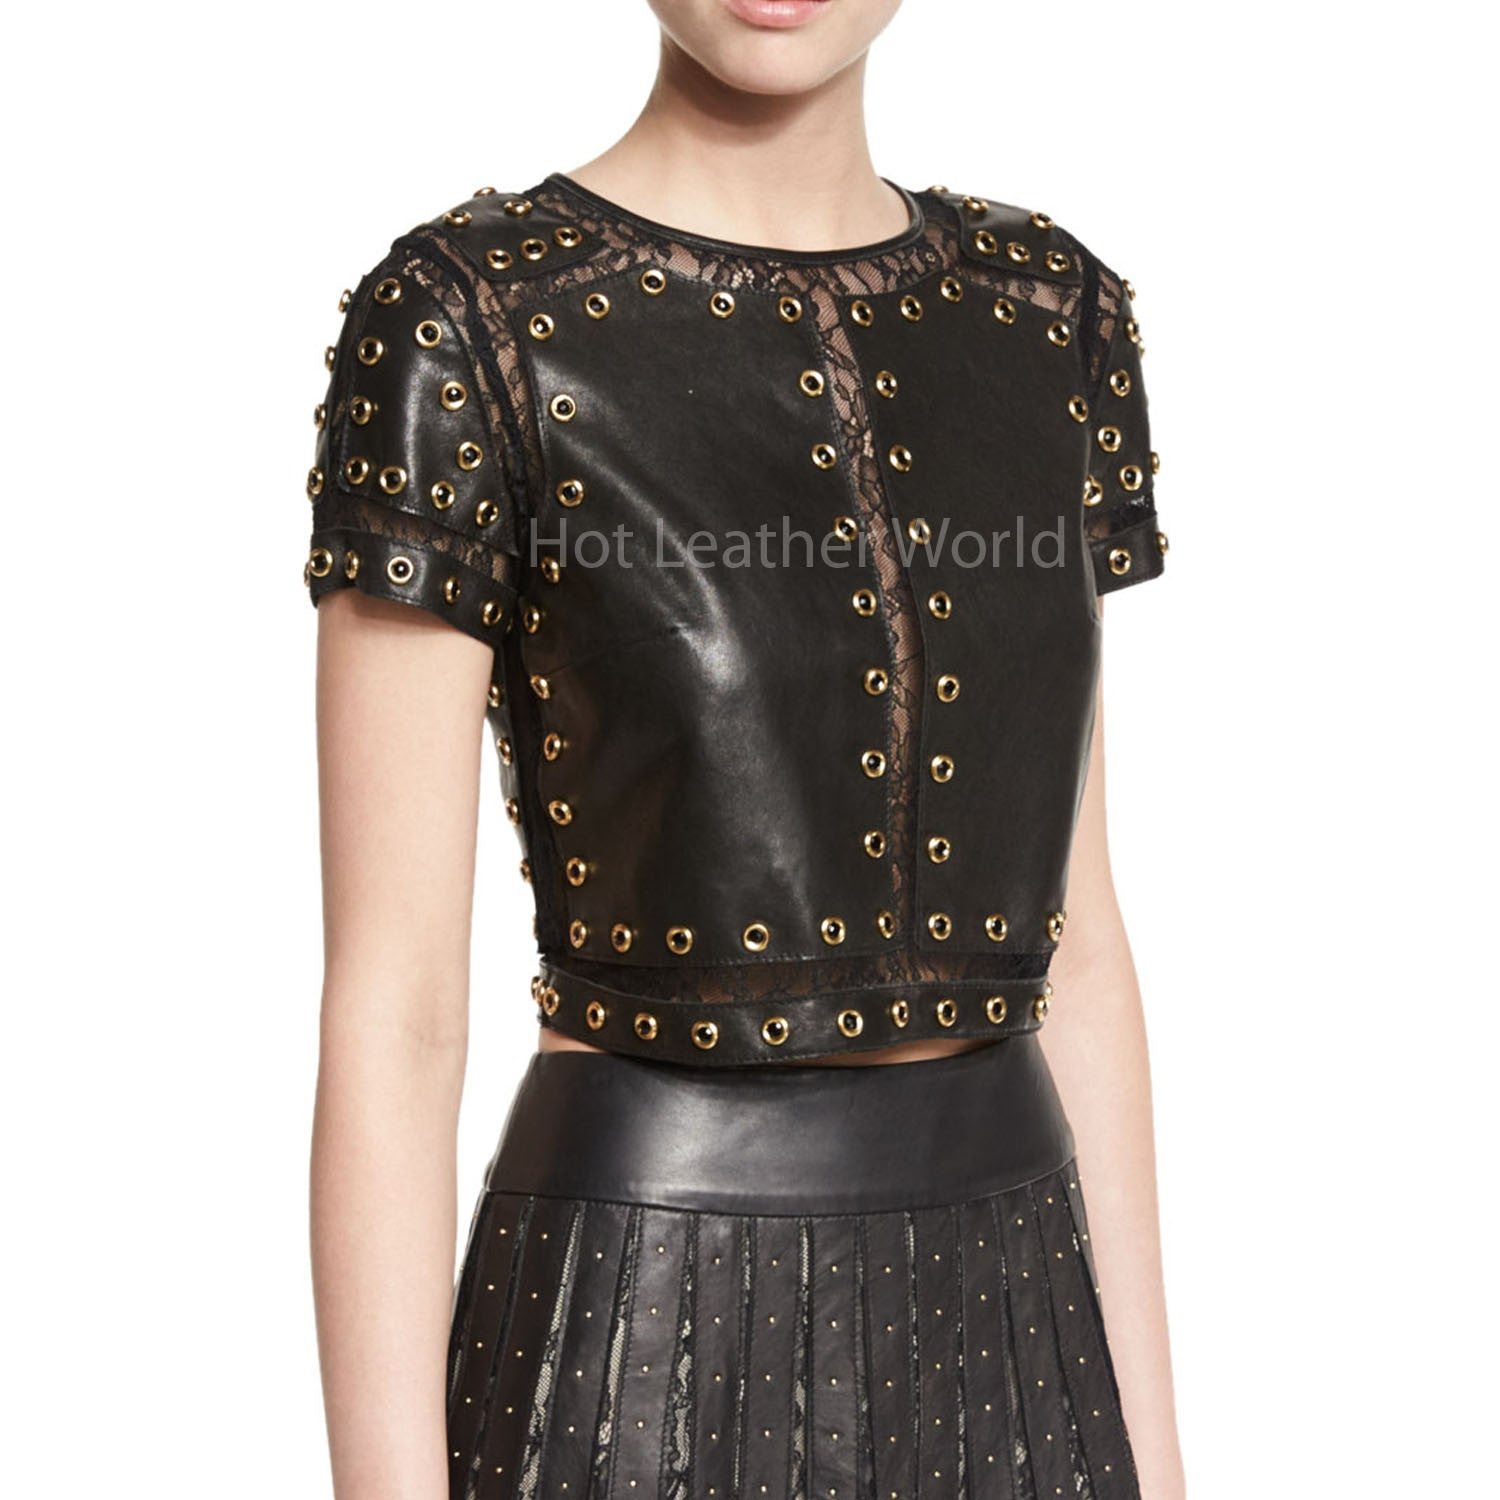 Studded Leather Top With Lace Trim -  HOTLEATHERWORLD